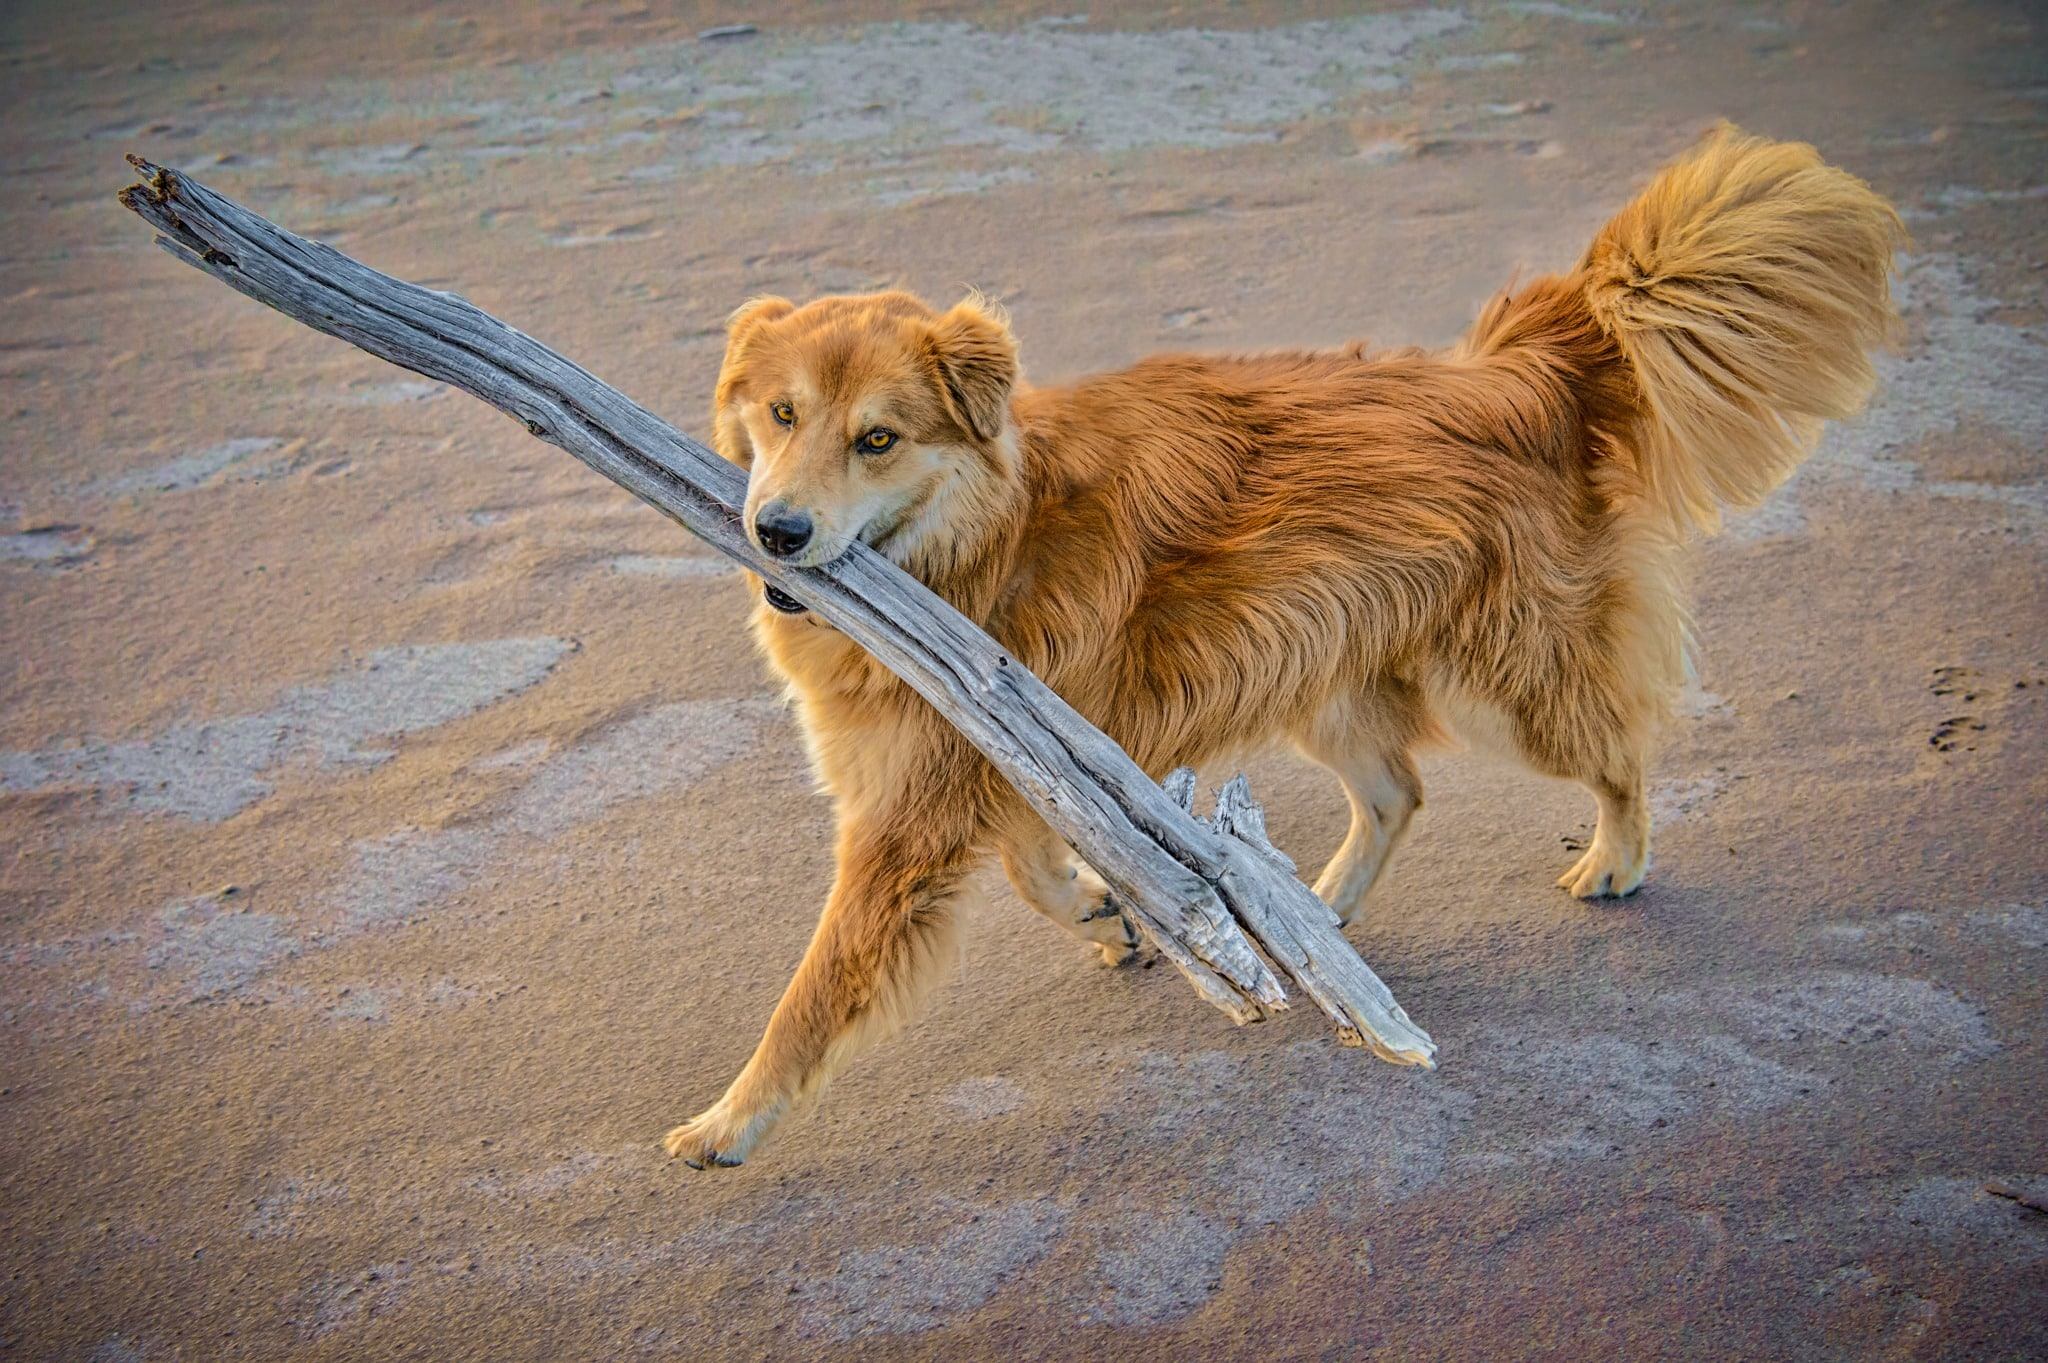 Tukai, the Chow/Sharpei mix, enjoys prancing around with a big stick retreived from along Medano Creek in Great Sand Dunes National Park and Preserve, near Alamosa, Colorado.